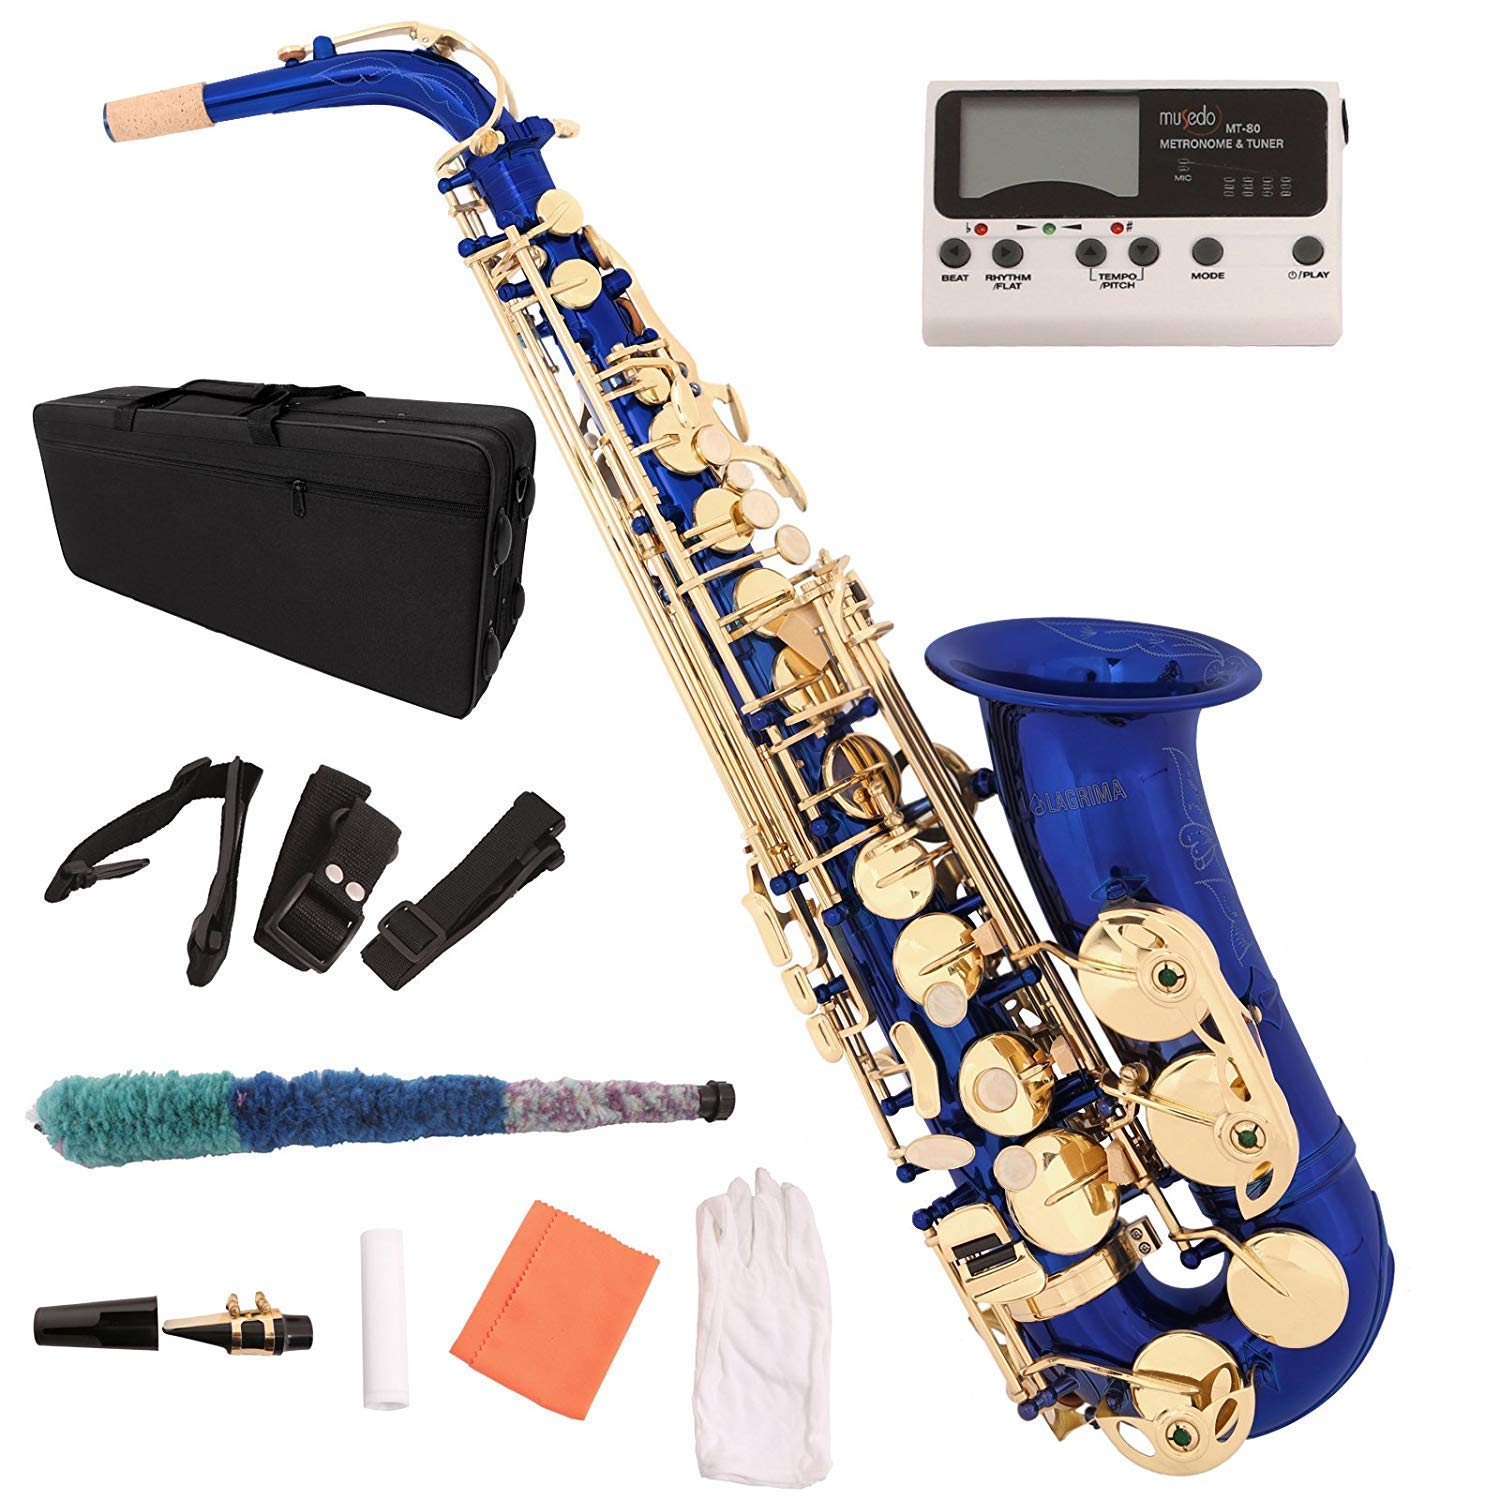 LAGRIMA Professional E Flat Alto Saxophone with Tuner, Case, Mouthpiece, Cleaning Cloth Rod, Glove, Neck Strap for Beginners Adult (Blue)